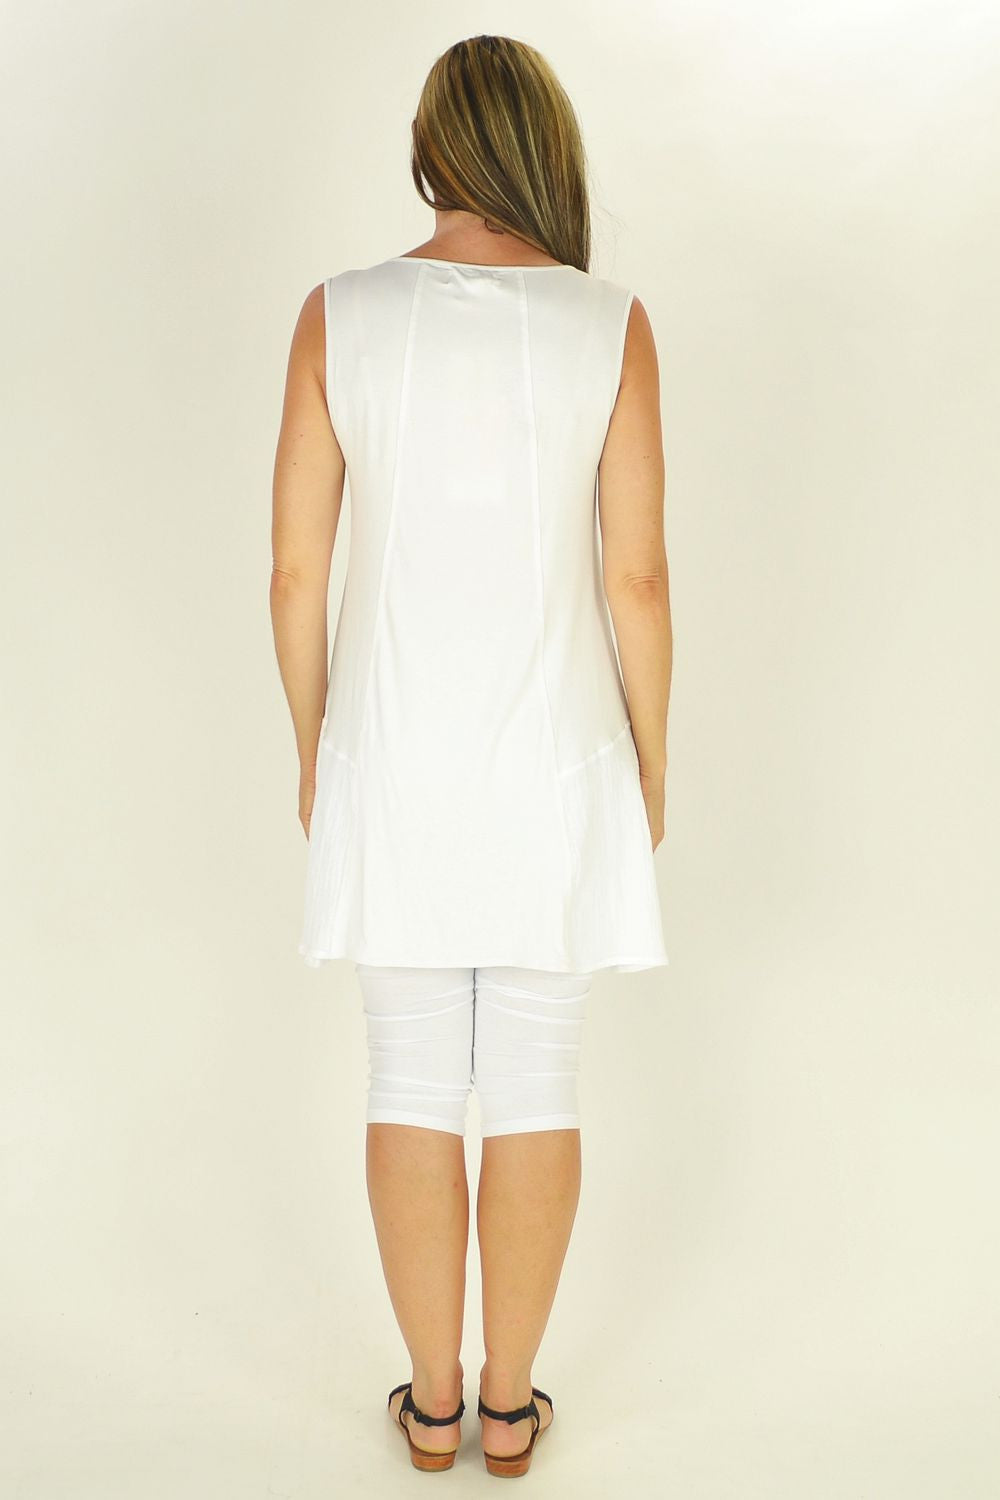 White Bright Clarity Tunic - at I Love Tunics @ www.ilovetunics.com = Number One! Tunics Destination